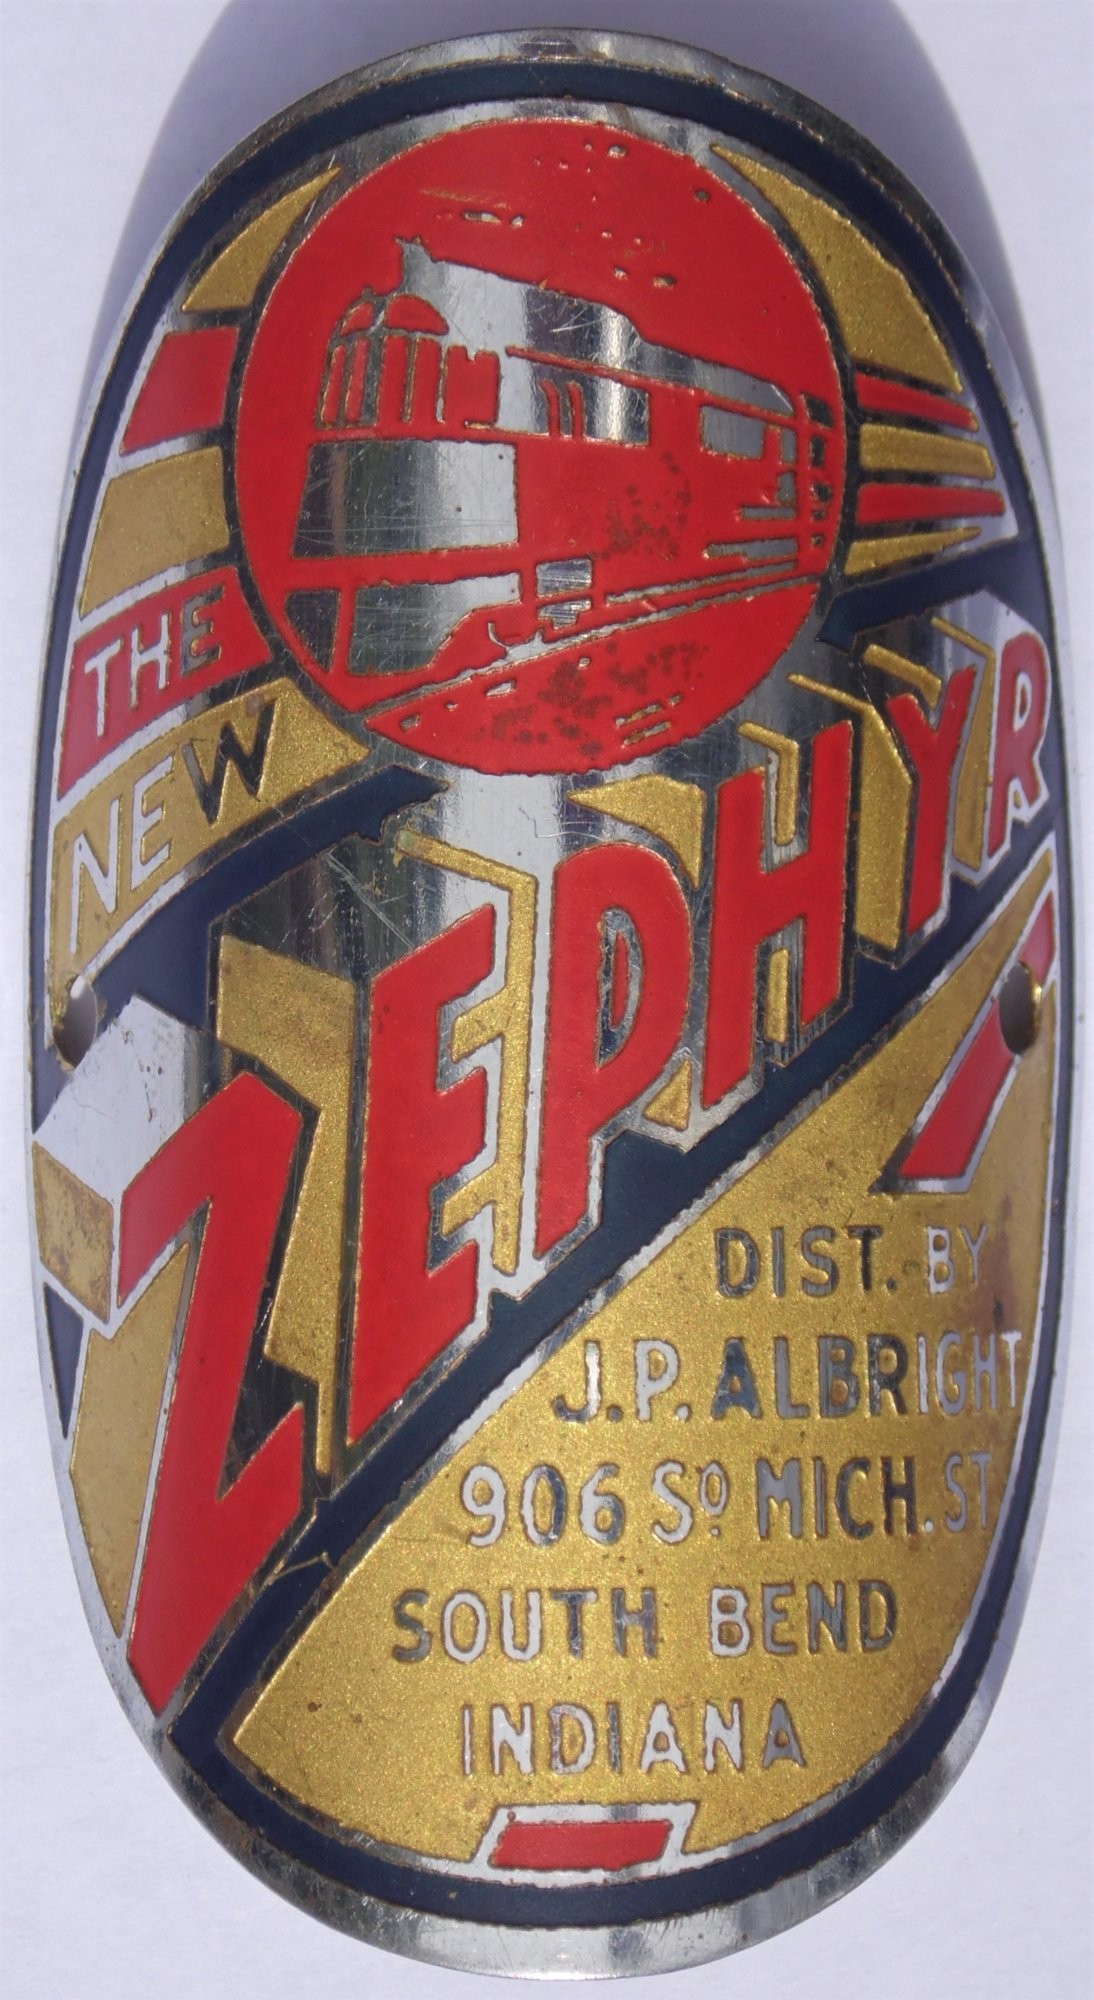 THE NEW ZEPHYR.JPG